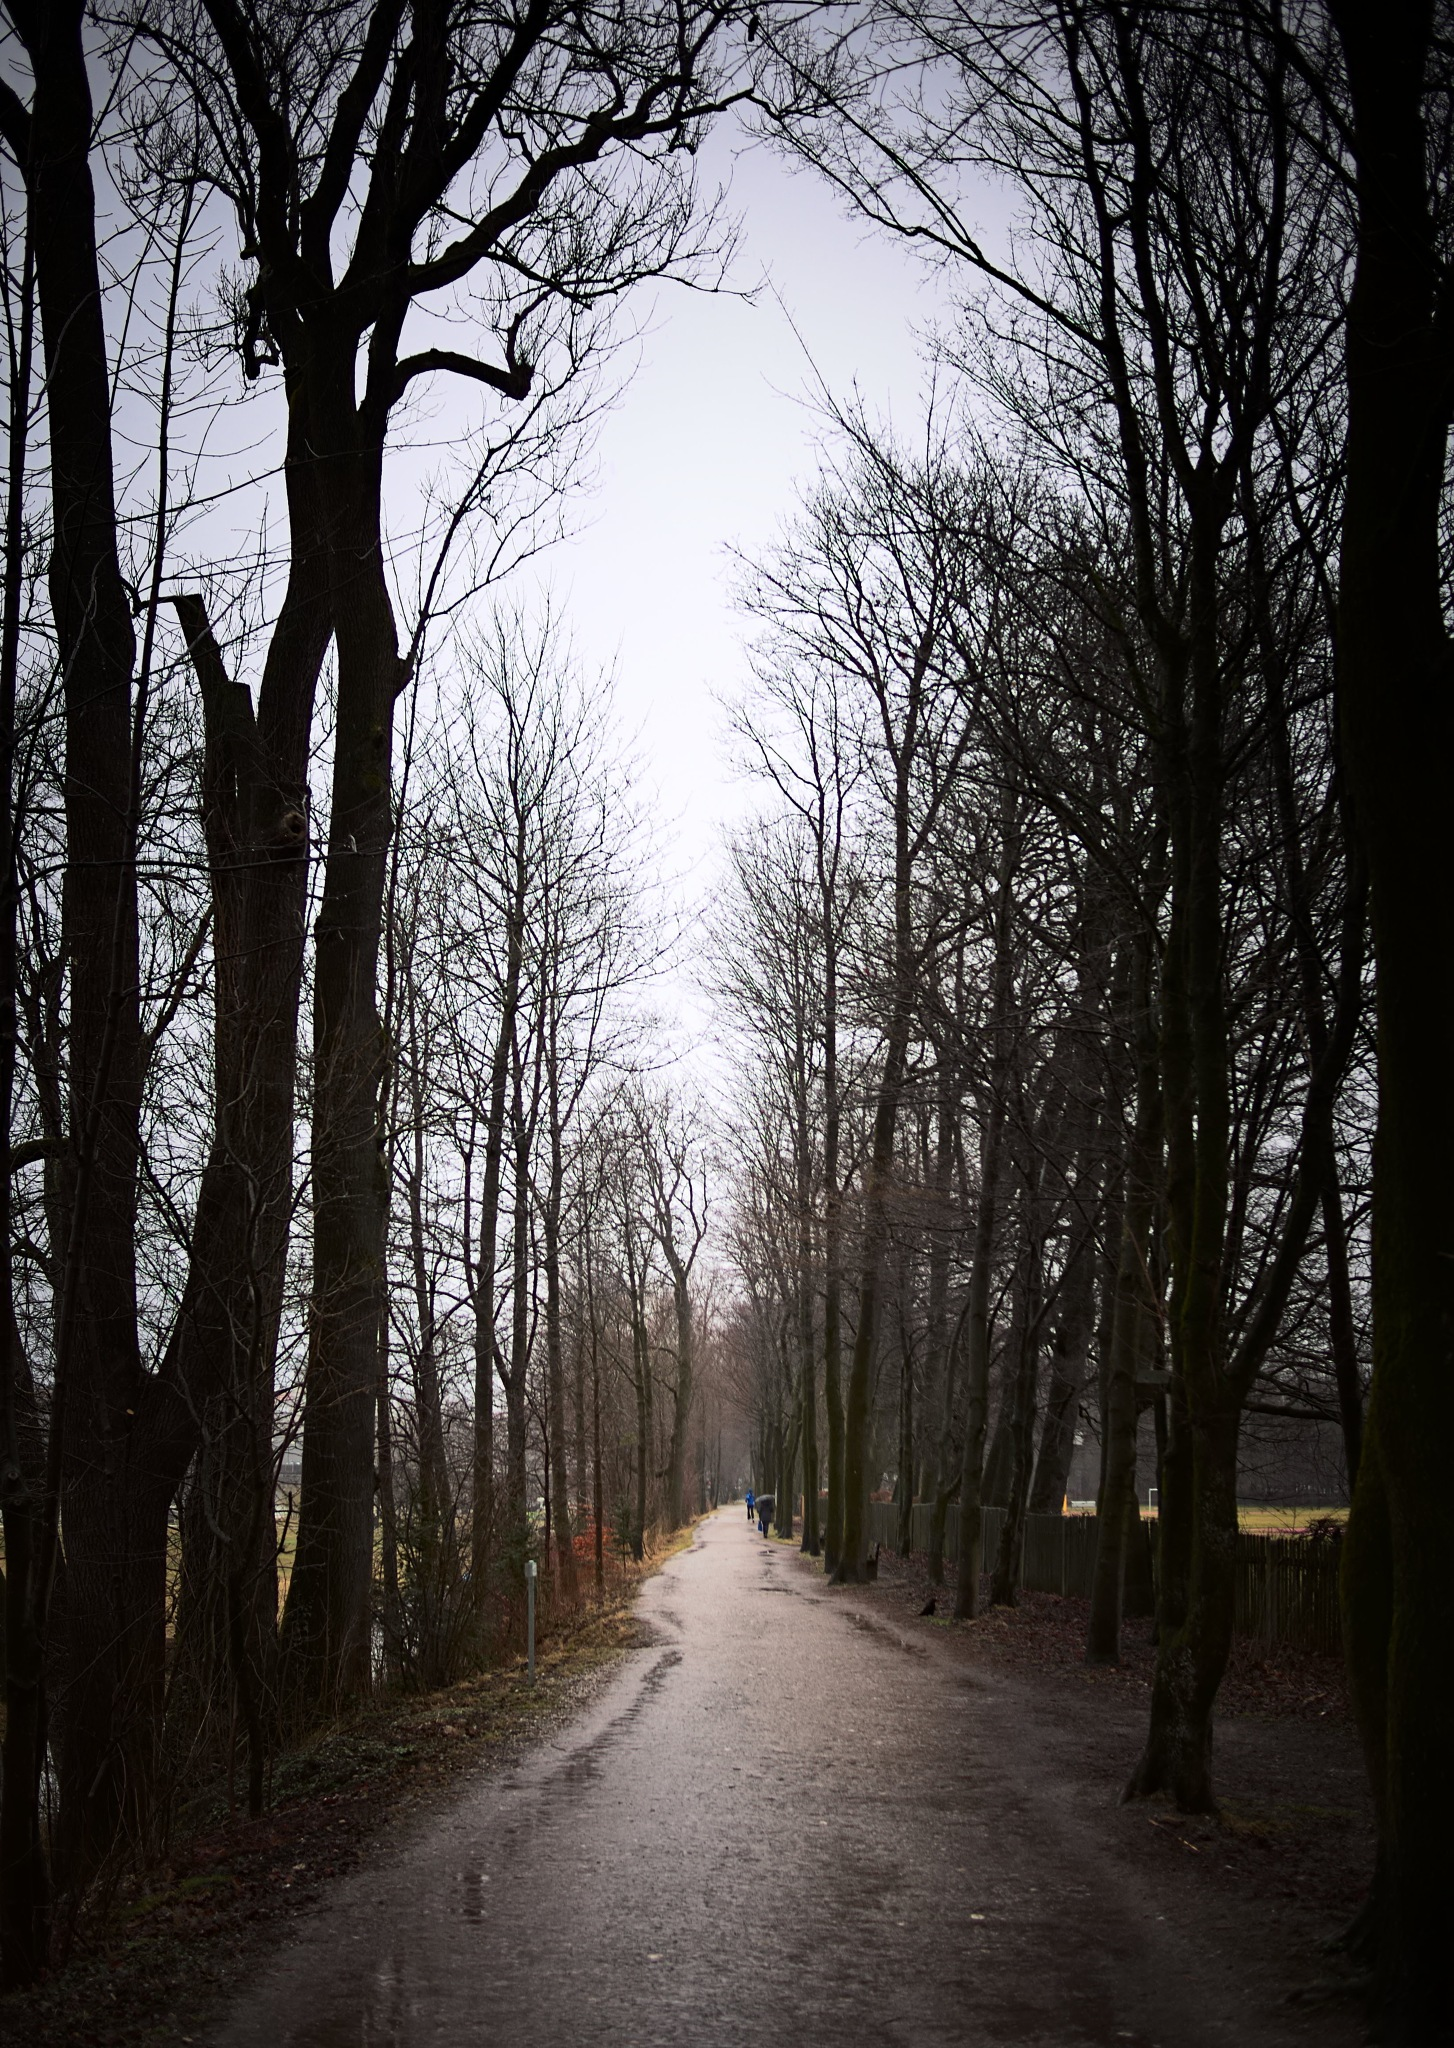 along this dirt path by koaxial